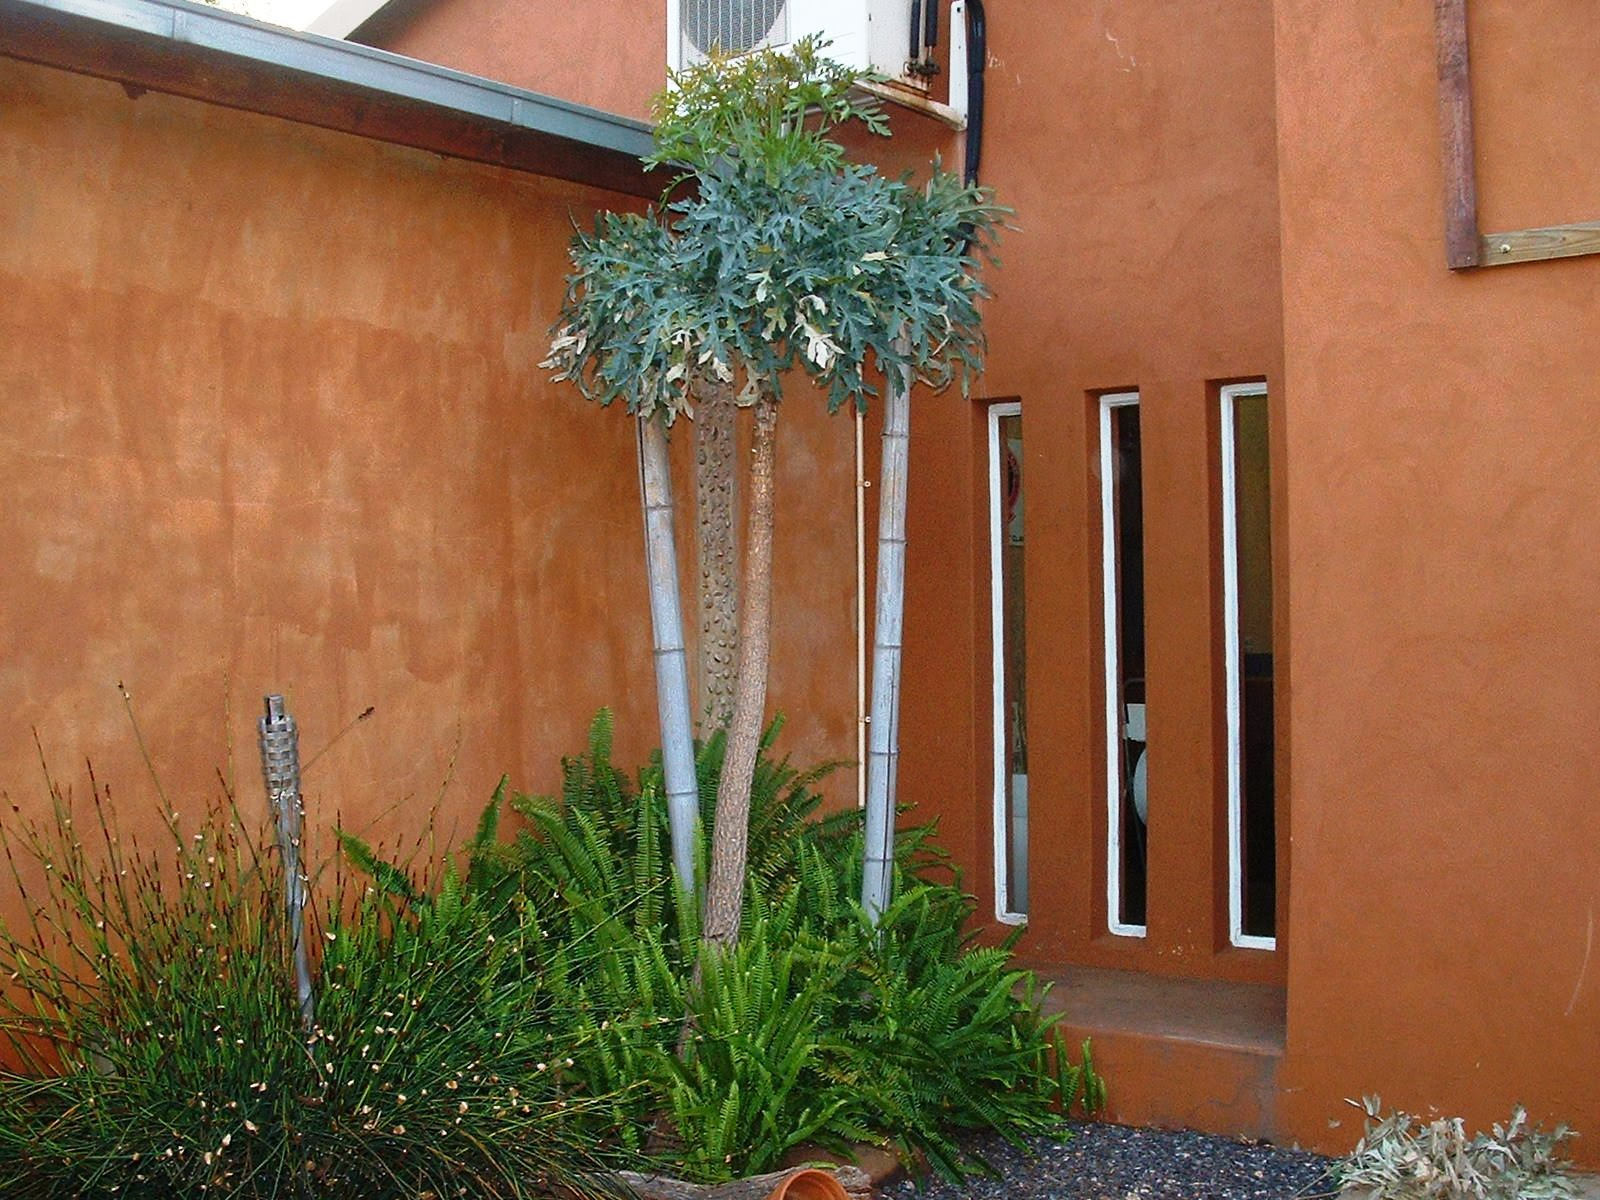 Unthinkable House Plant Tree. 2006 Gardening in Africa  Kiepersol Cabbage Tree Cussonia paniculata